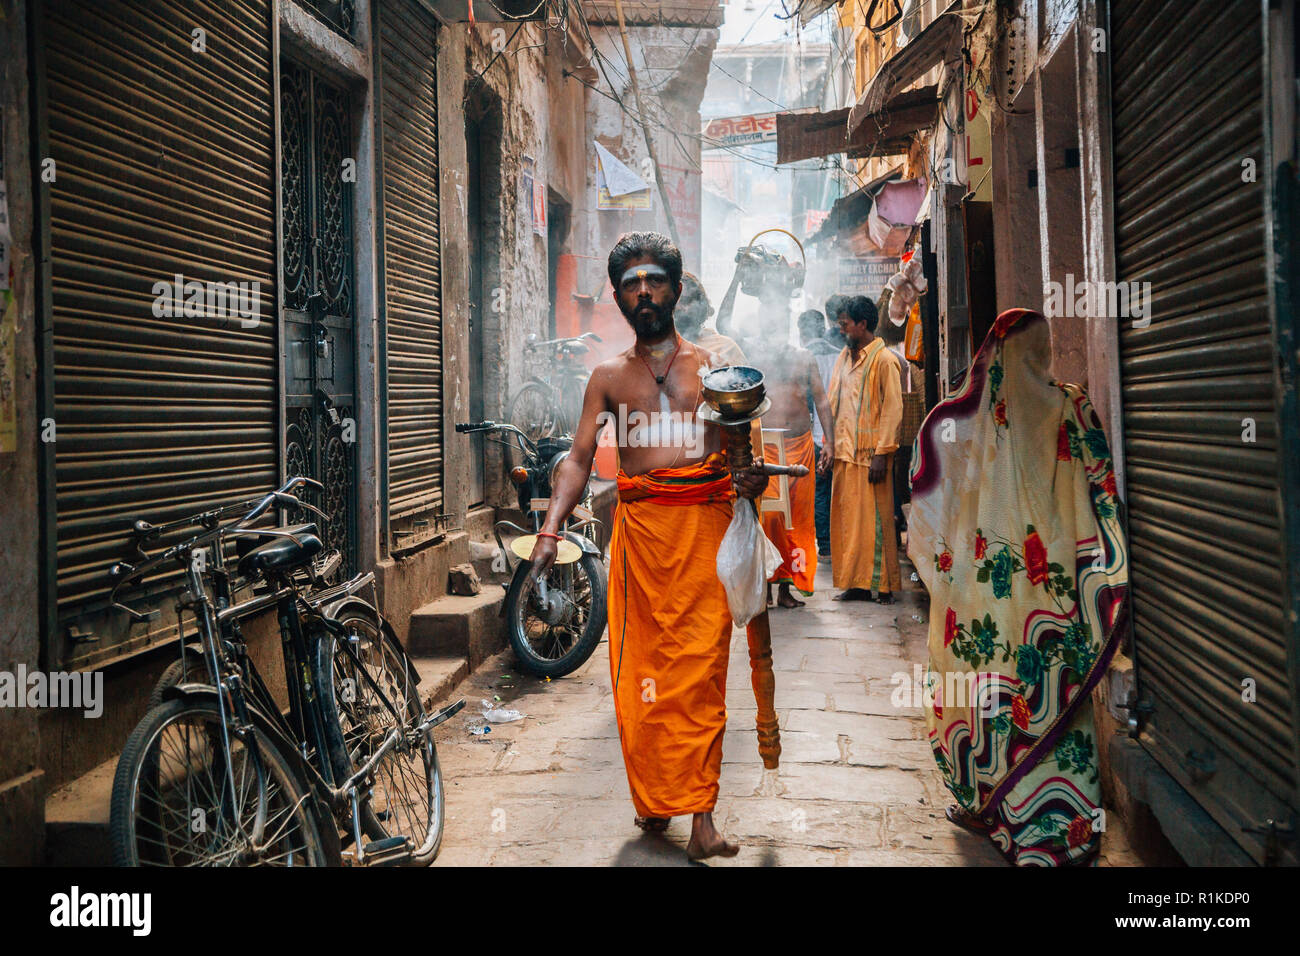 Varanasi, India - November 23, 2017 : Hindu perform worship ceremony at Bangali Tola old street - Stock Image